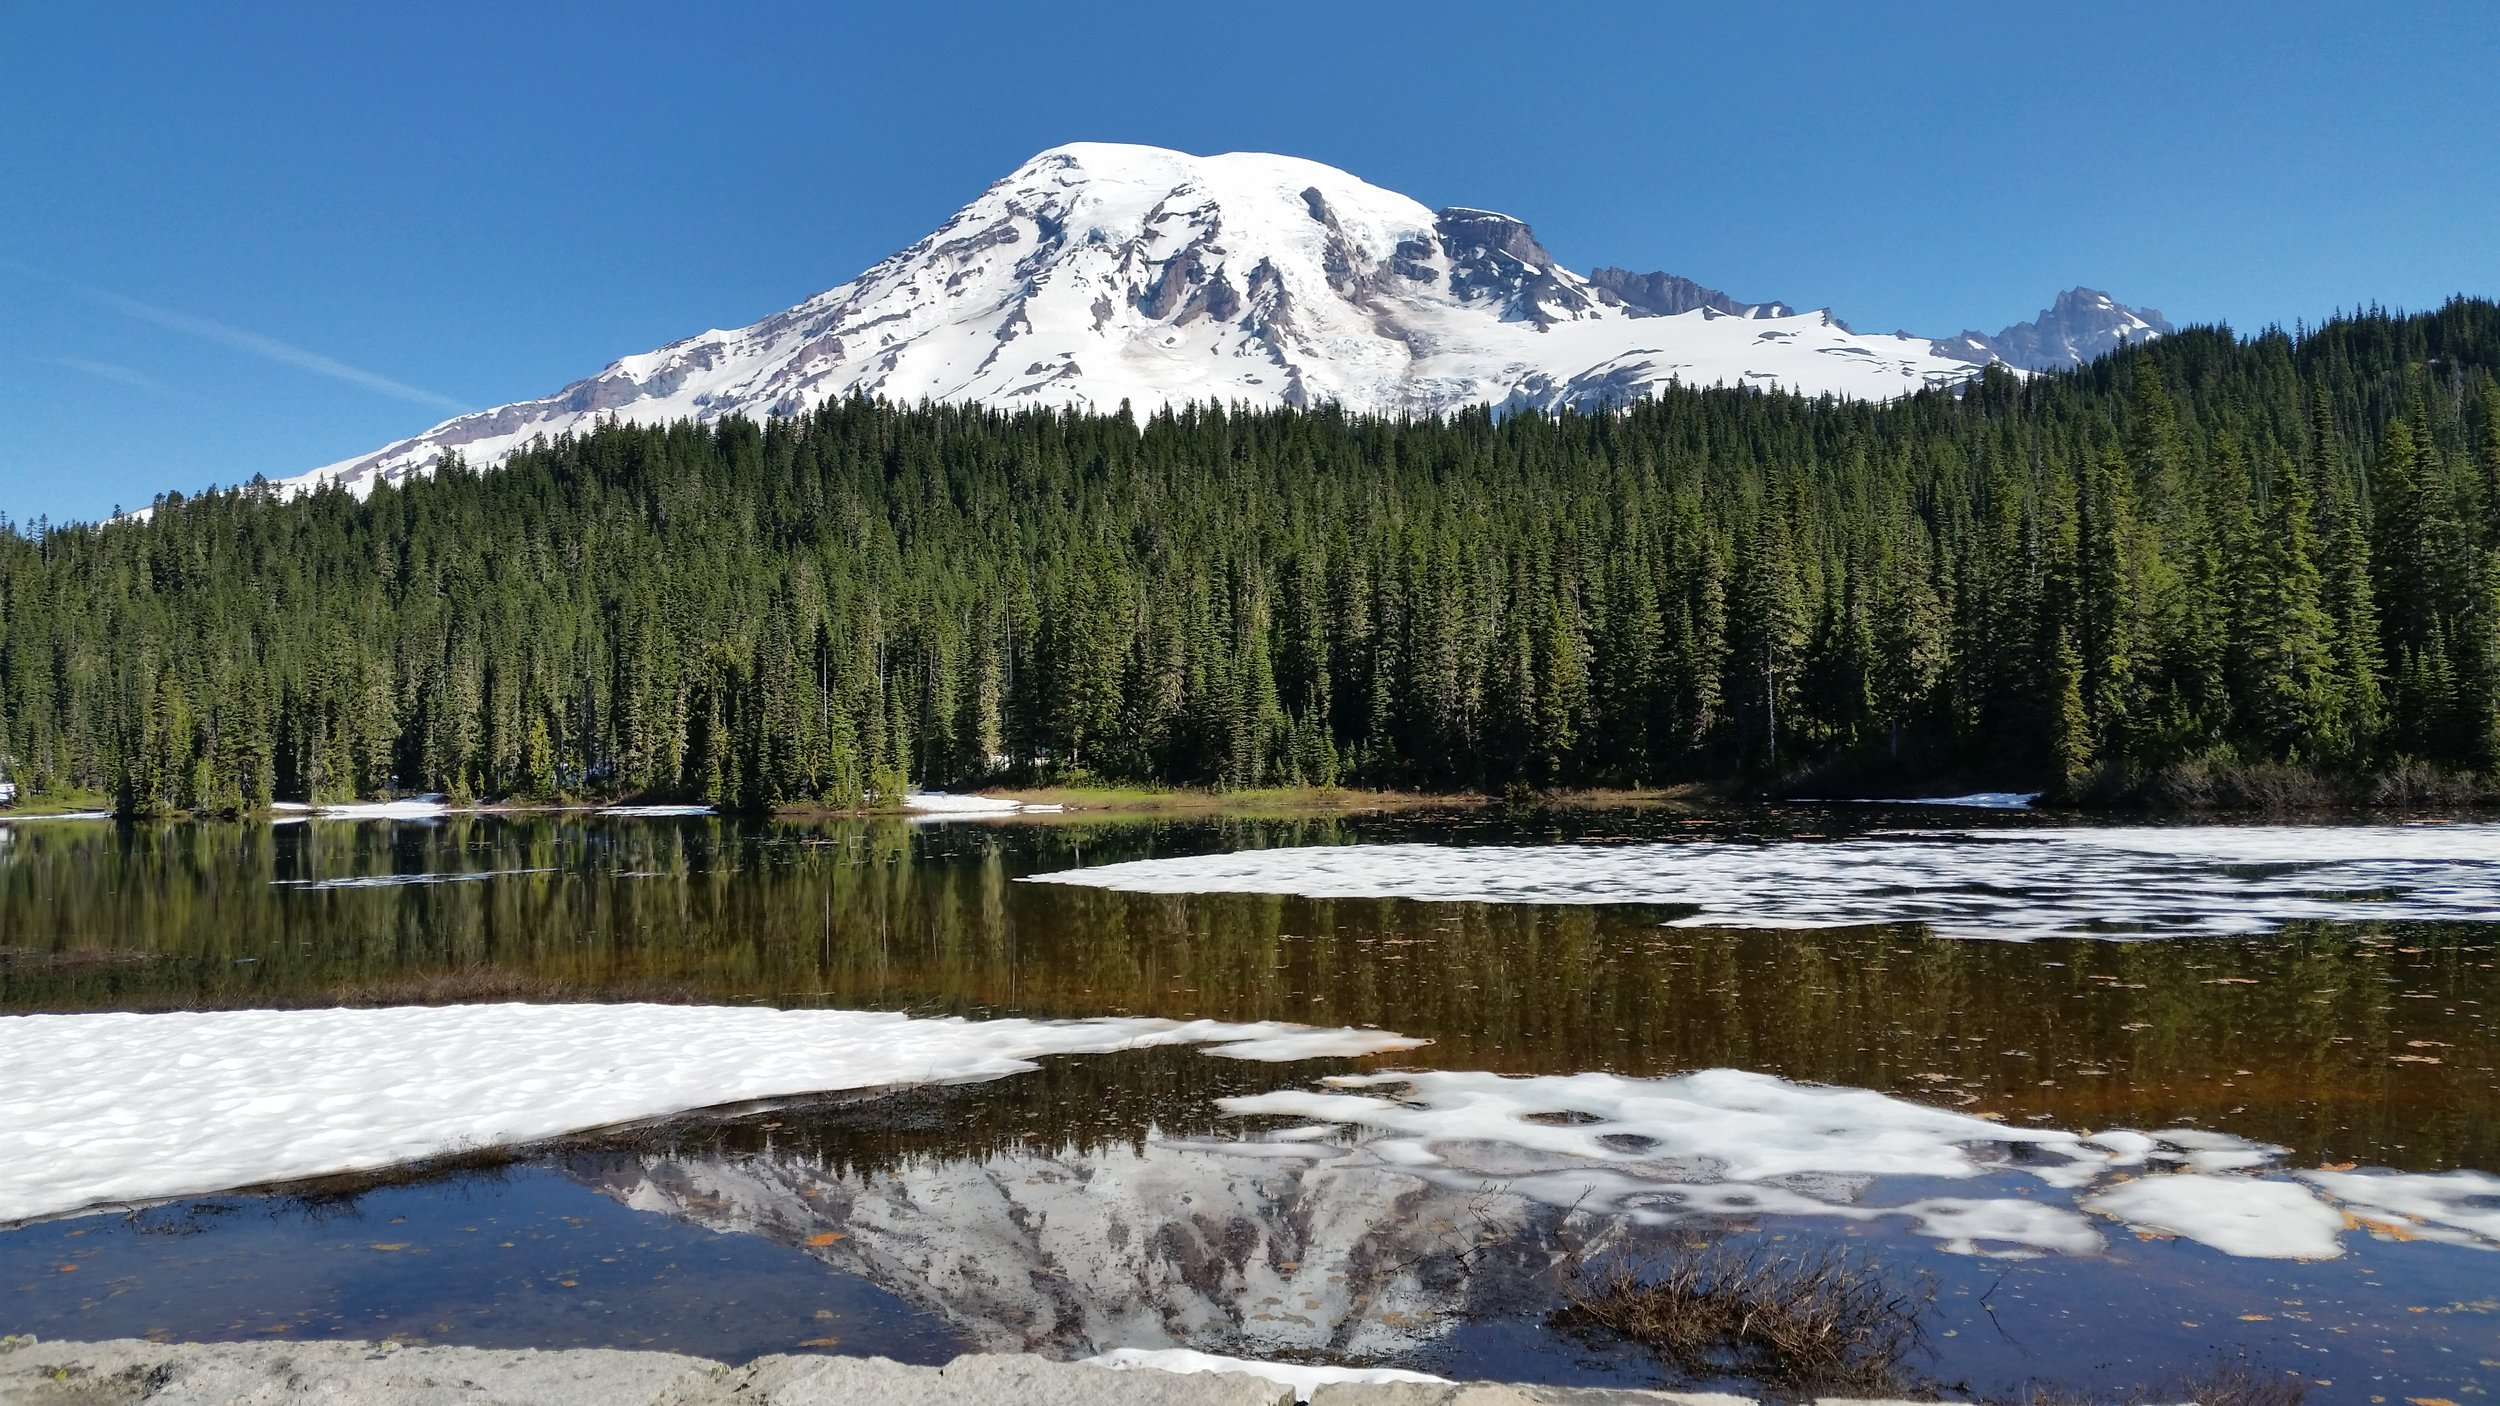 Mt Rainer National Park, Reflection Lake